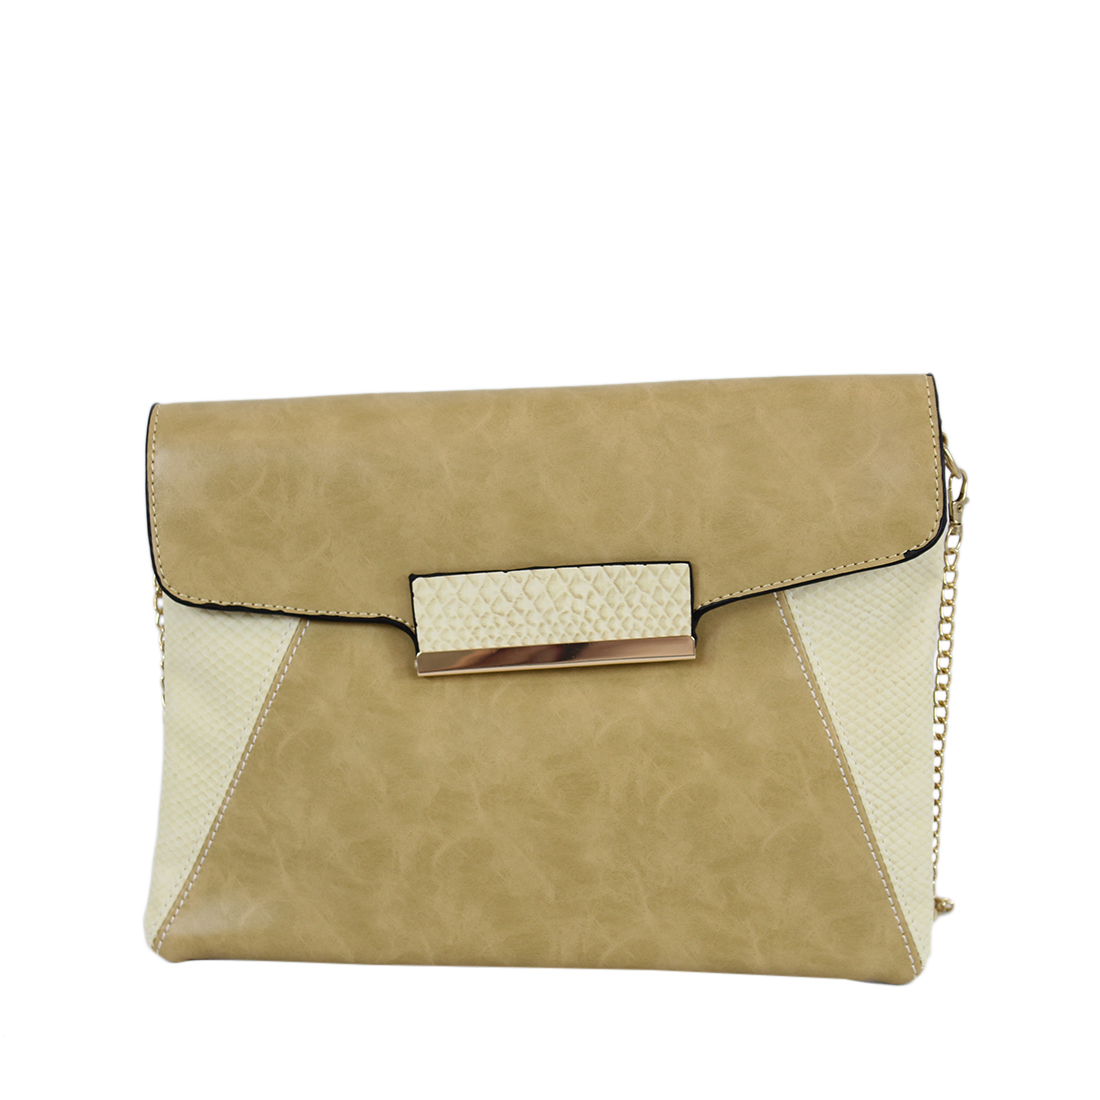 Leather clutch with sneak print decorations on sides